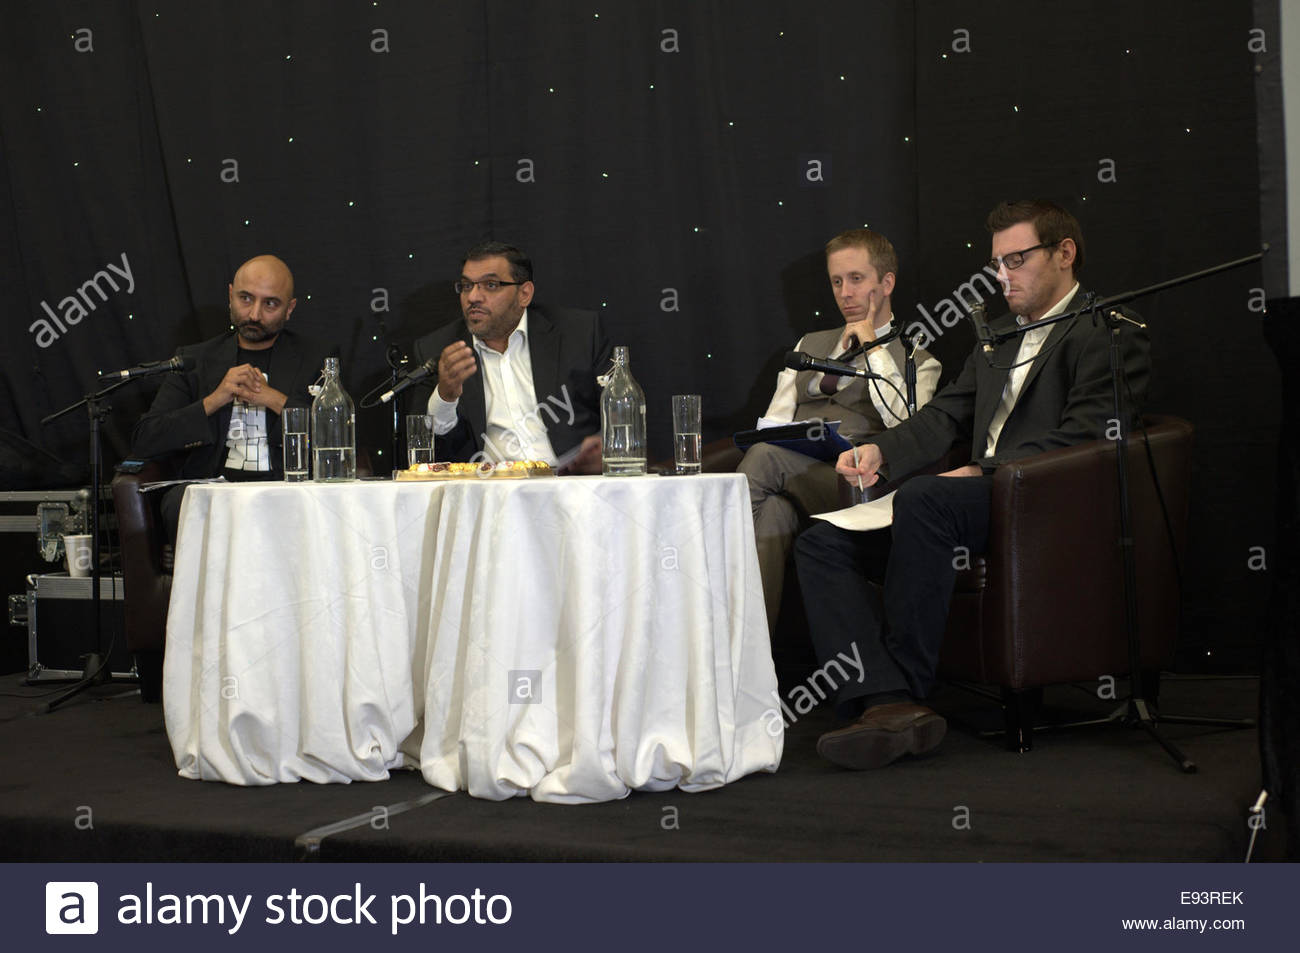 Anas Al Abdeh Aka Abdah Listening To Members Of The Audience At Syria Conflict Conference In Manchester UK On 17th October 2014